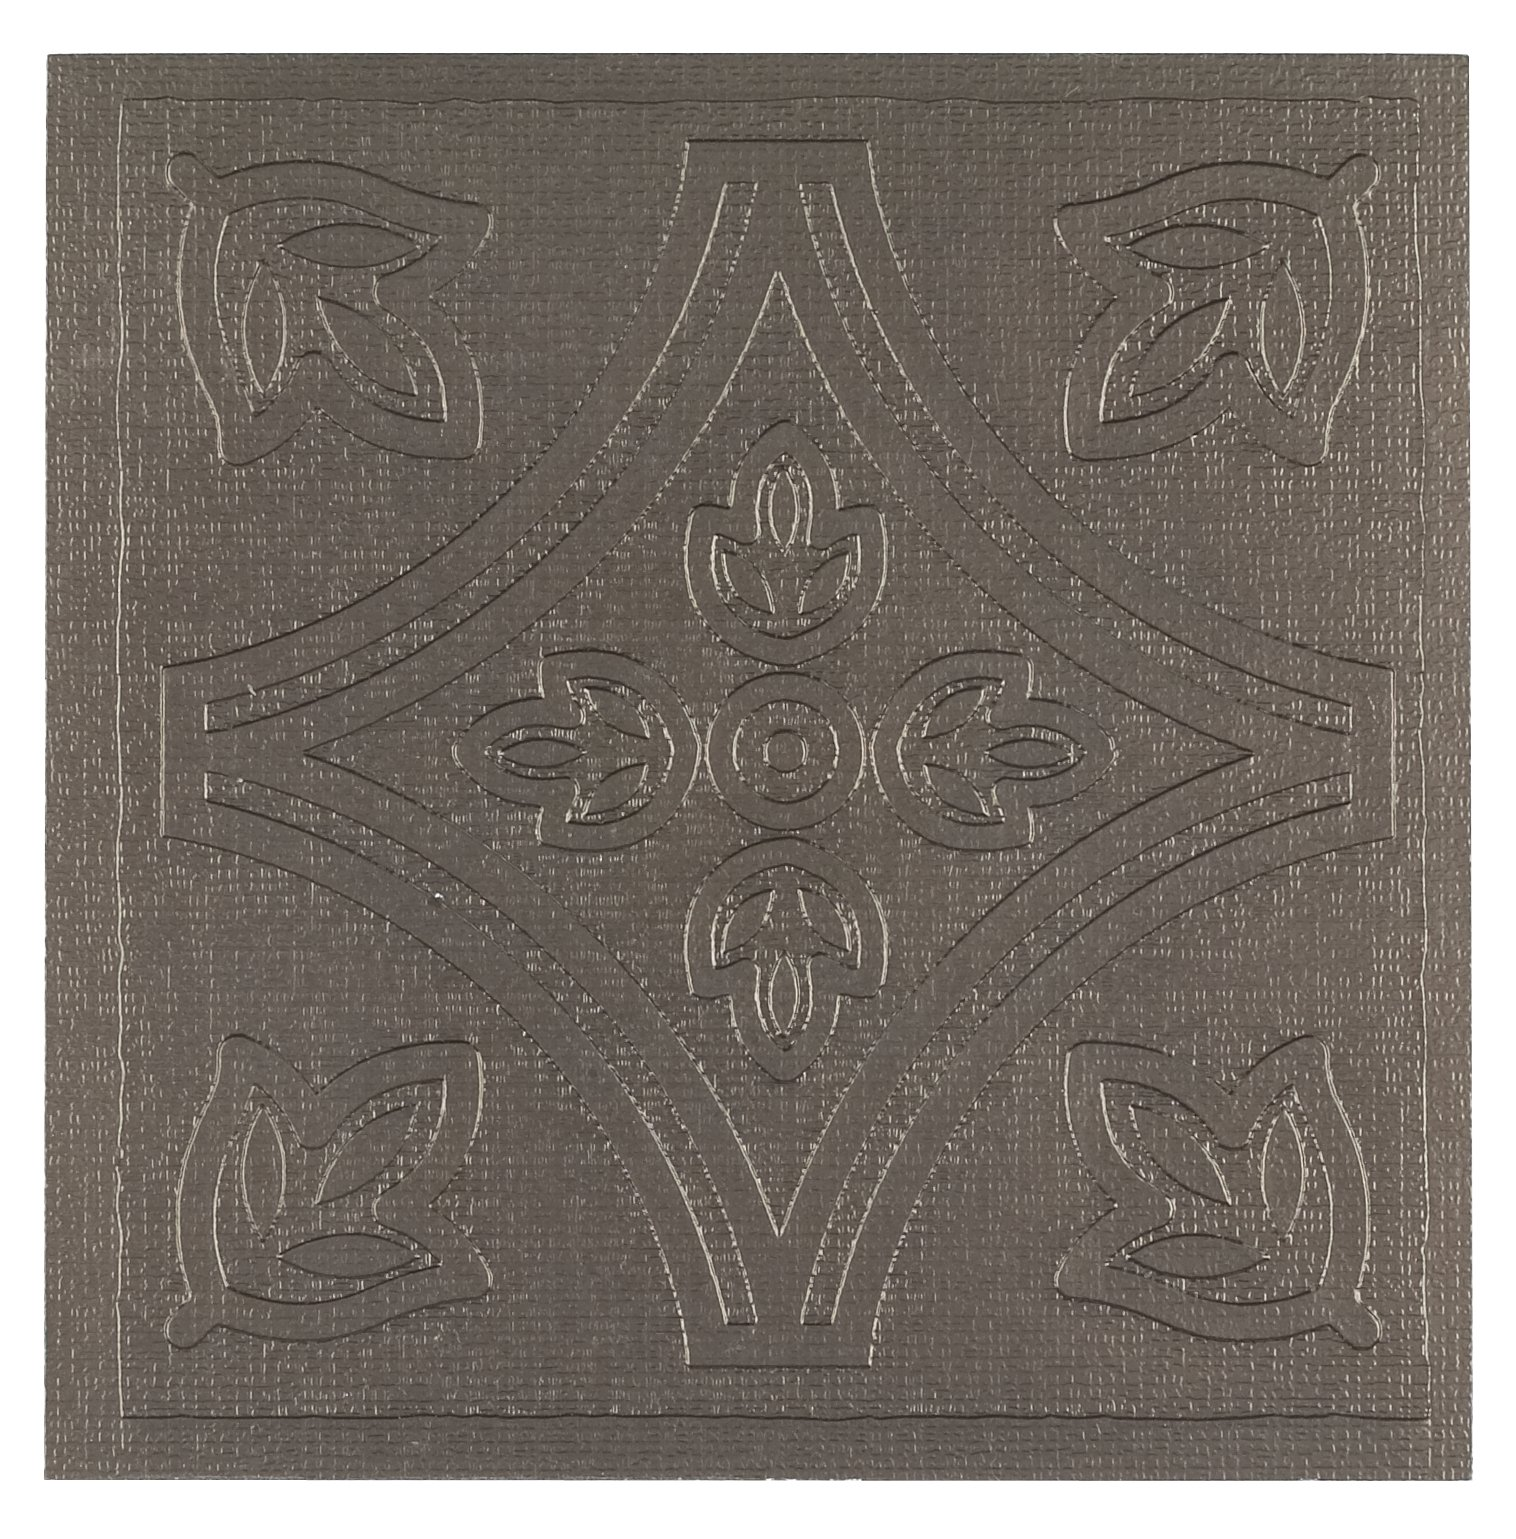 Achim Home Furnishings WTV303MT10 Metallo Wall Tile, 4 by 4-inch, Pewter/brown, 27-Pack by Achim Home Furnishings